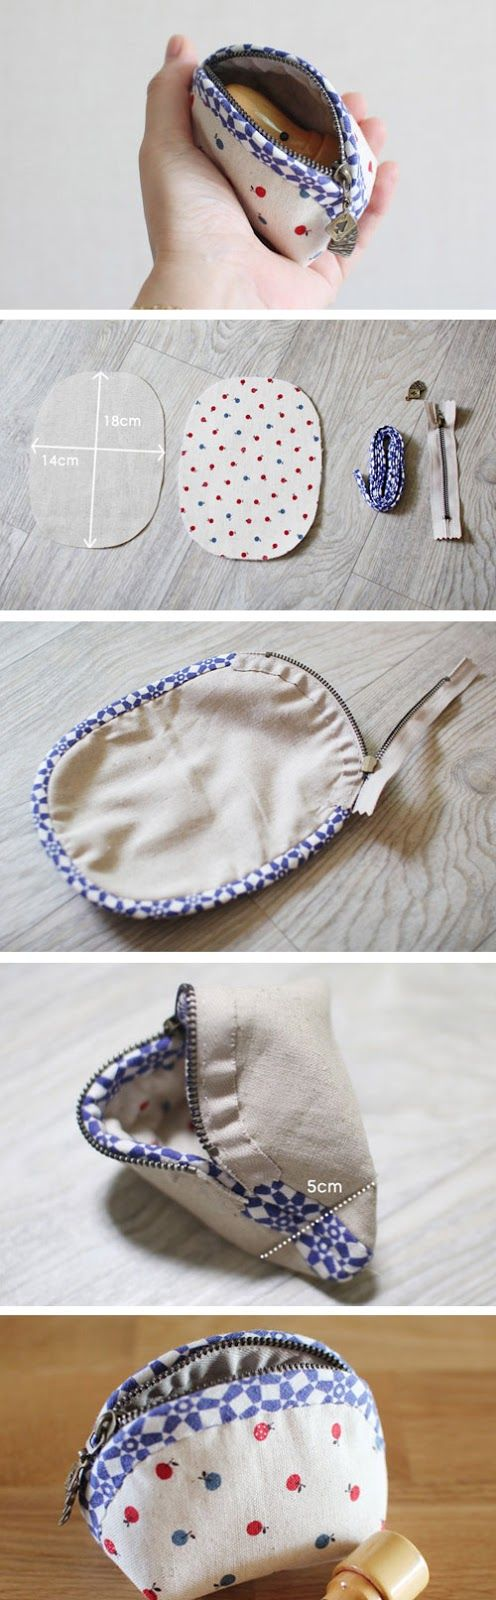 Rounded Zipper Pouch - Sewing Pattern & Tutorial; case,  coin purse, DIY  http://www.handmadiya.com/2016/10/small-coin-purse-tutorial.html